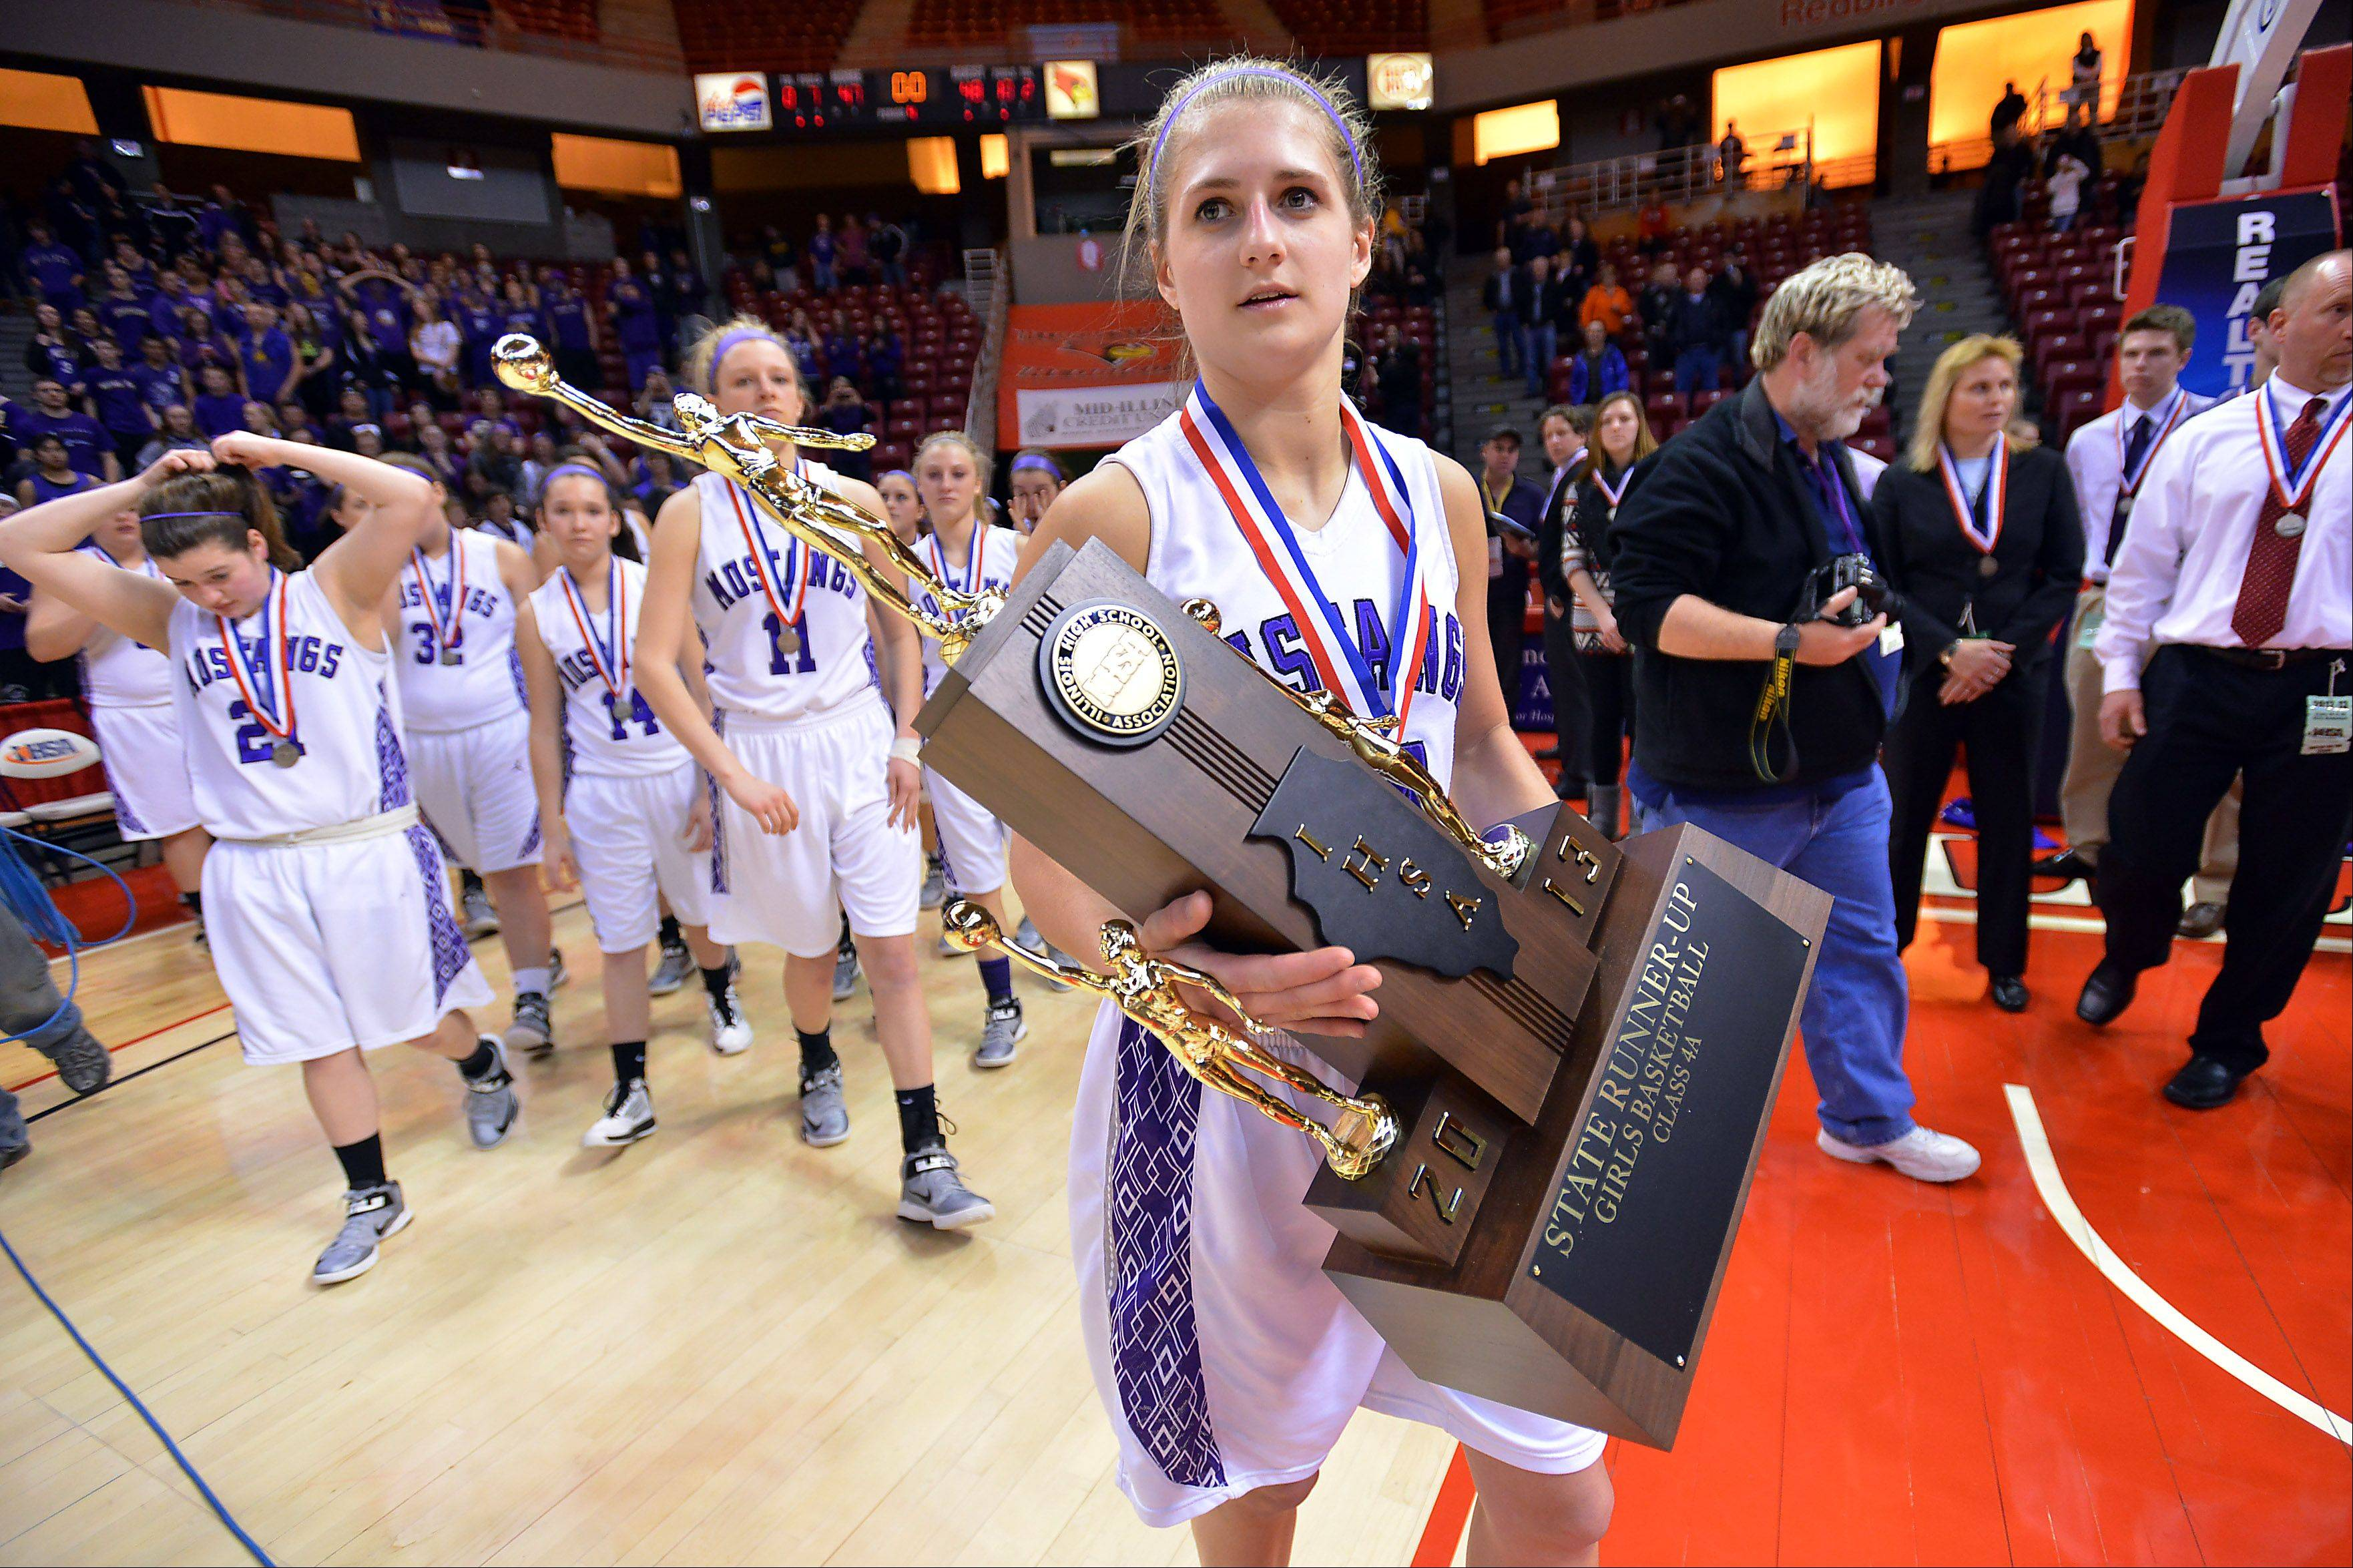 Rolling Meadows Alexis Glasgow carries the Class 4A runner-up trophy after Meadows got beat by buzzer beater shot by Marian in the final second in the Class 4A 2013 girls basketball championship game in Normal on Saturday.